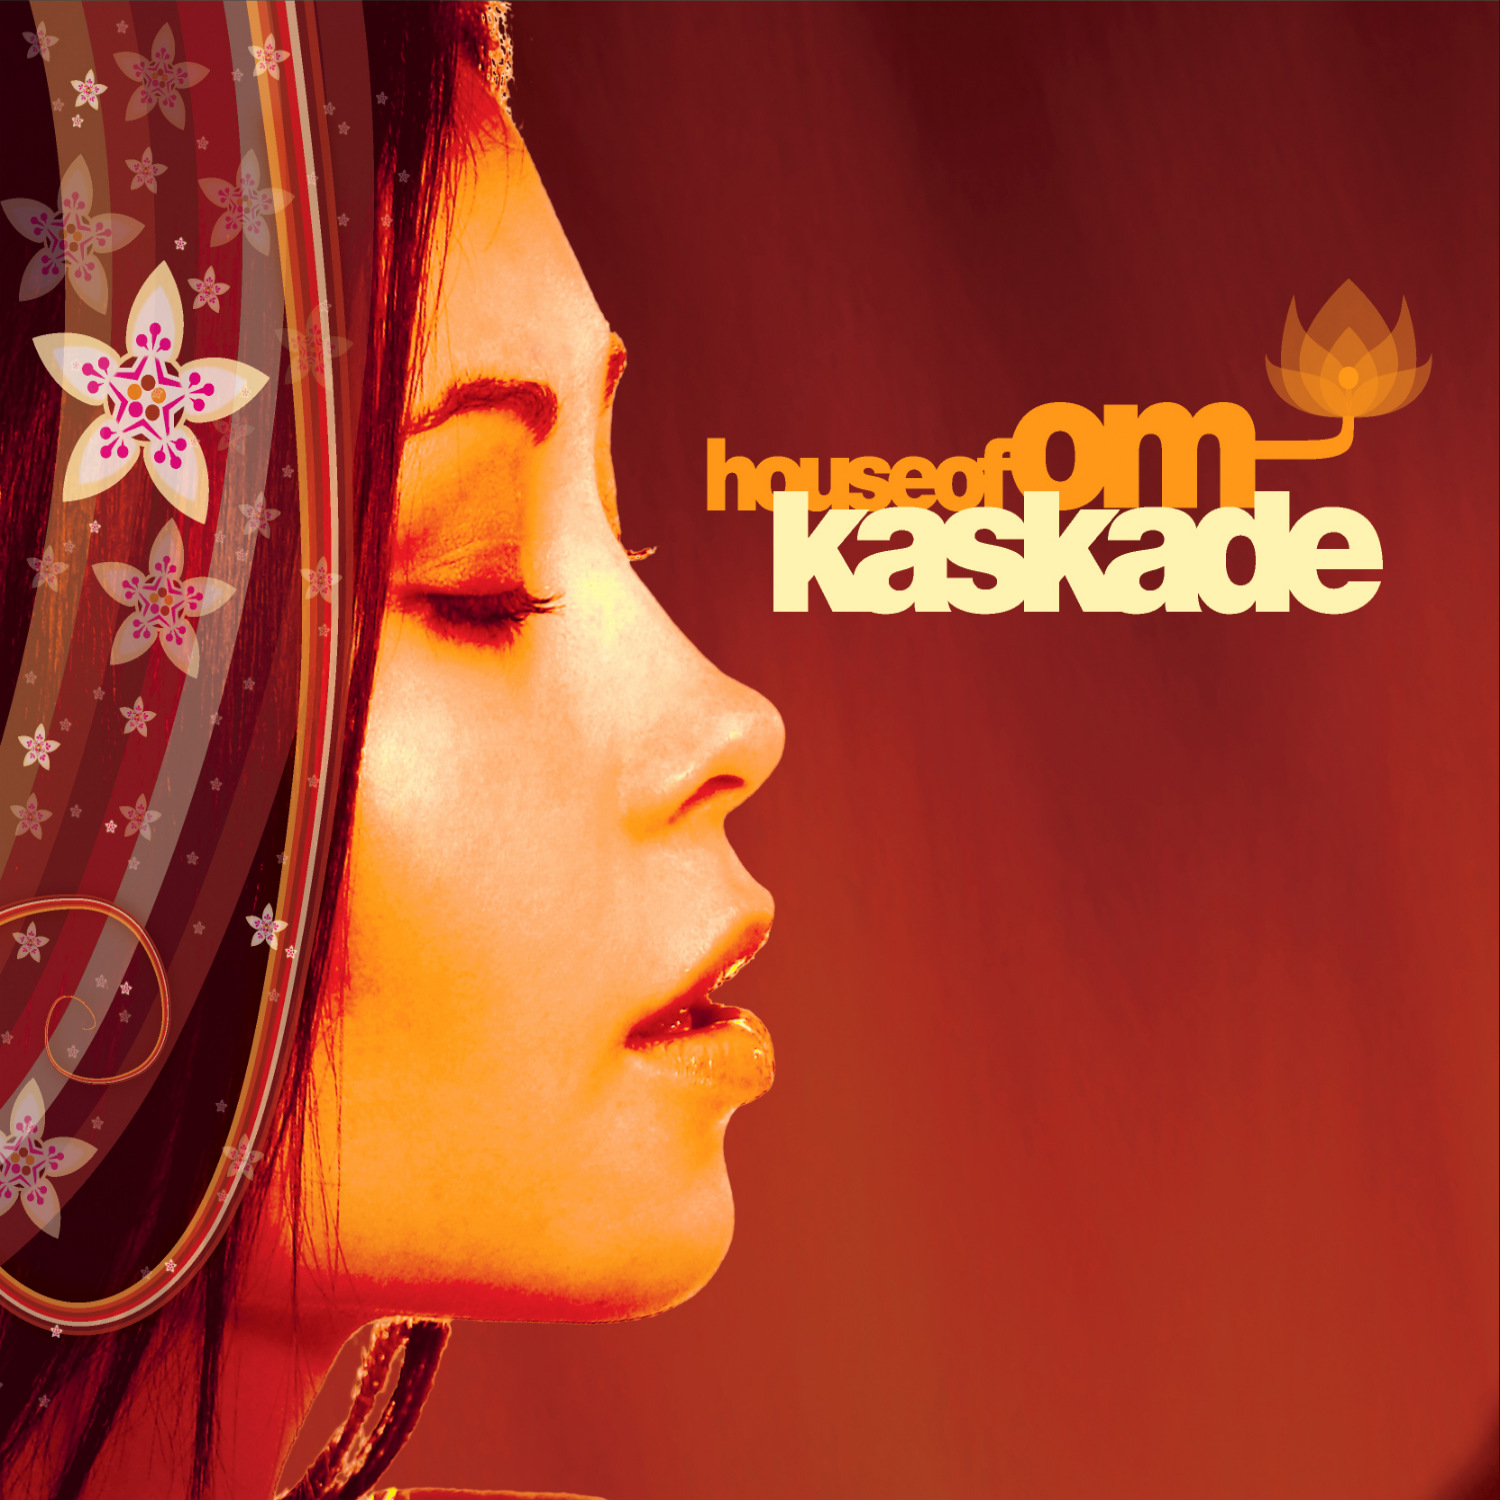 Various Artists - House of Om (Mixed by Kaskade)